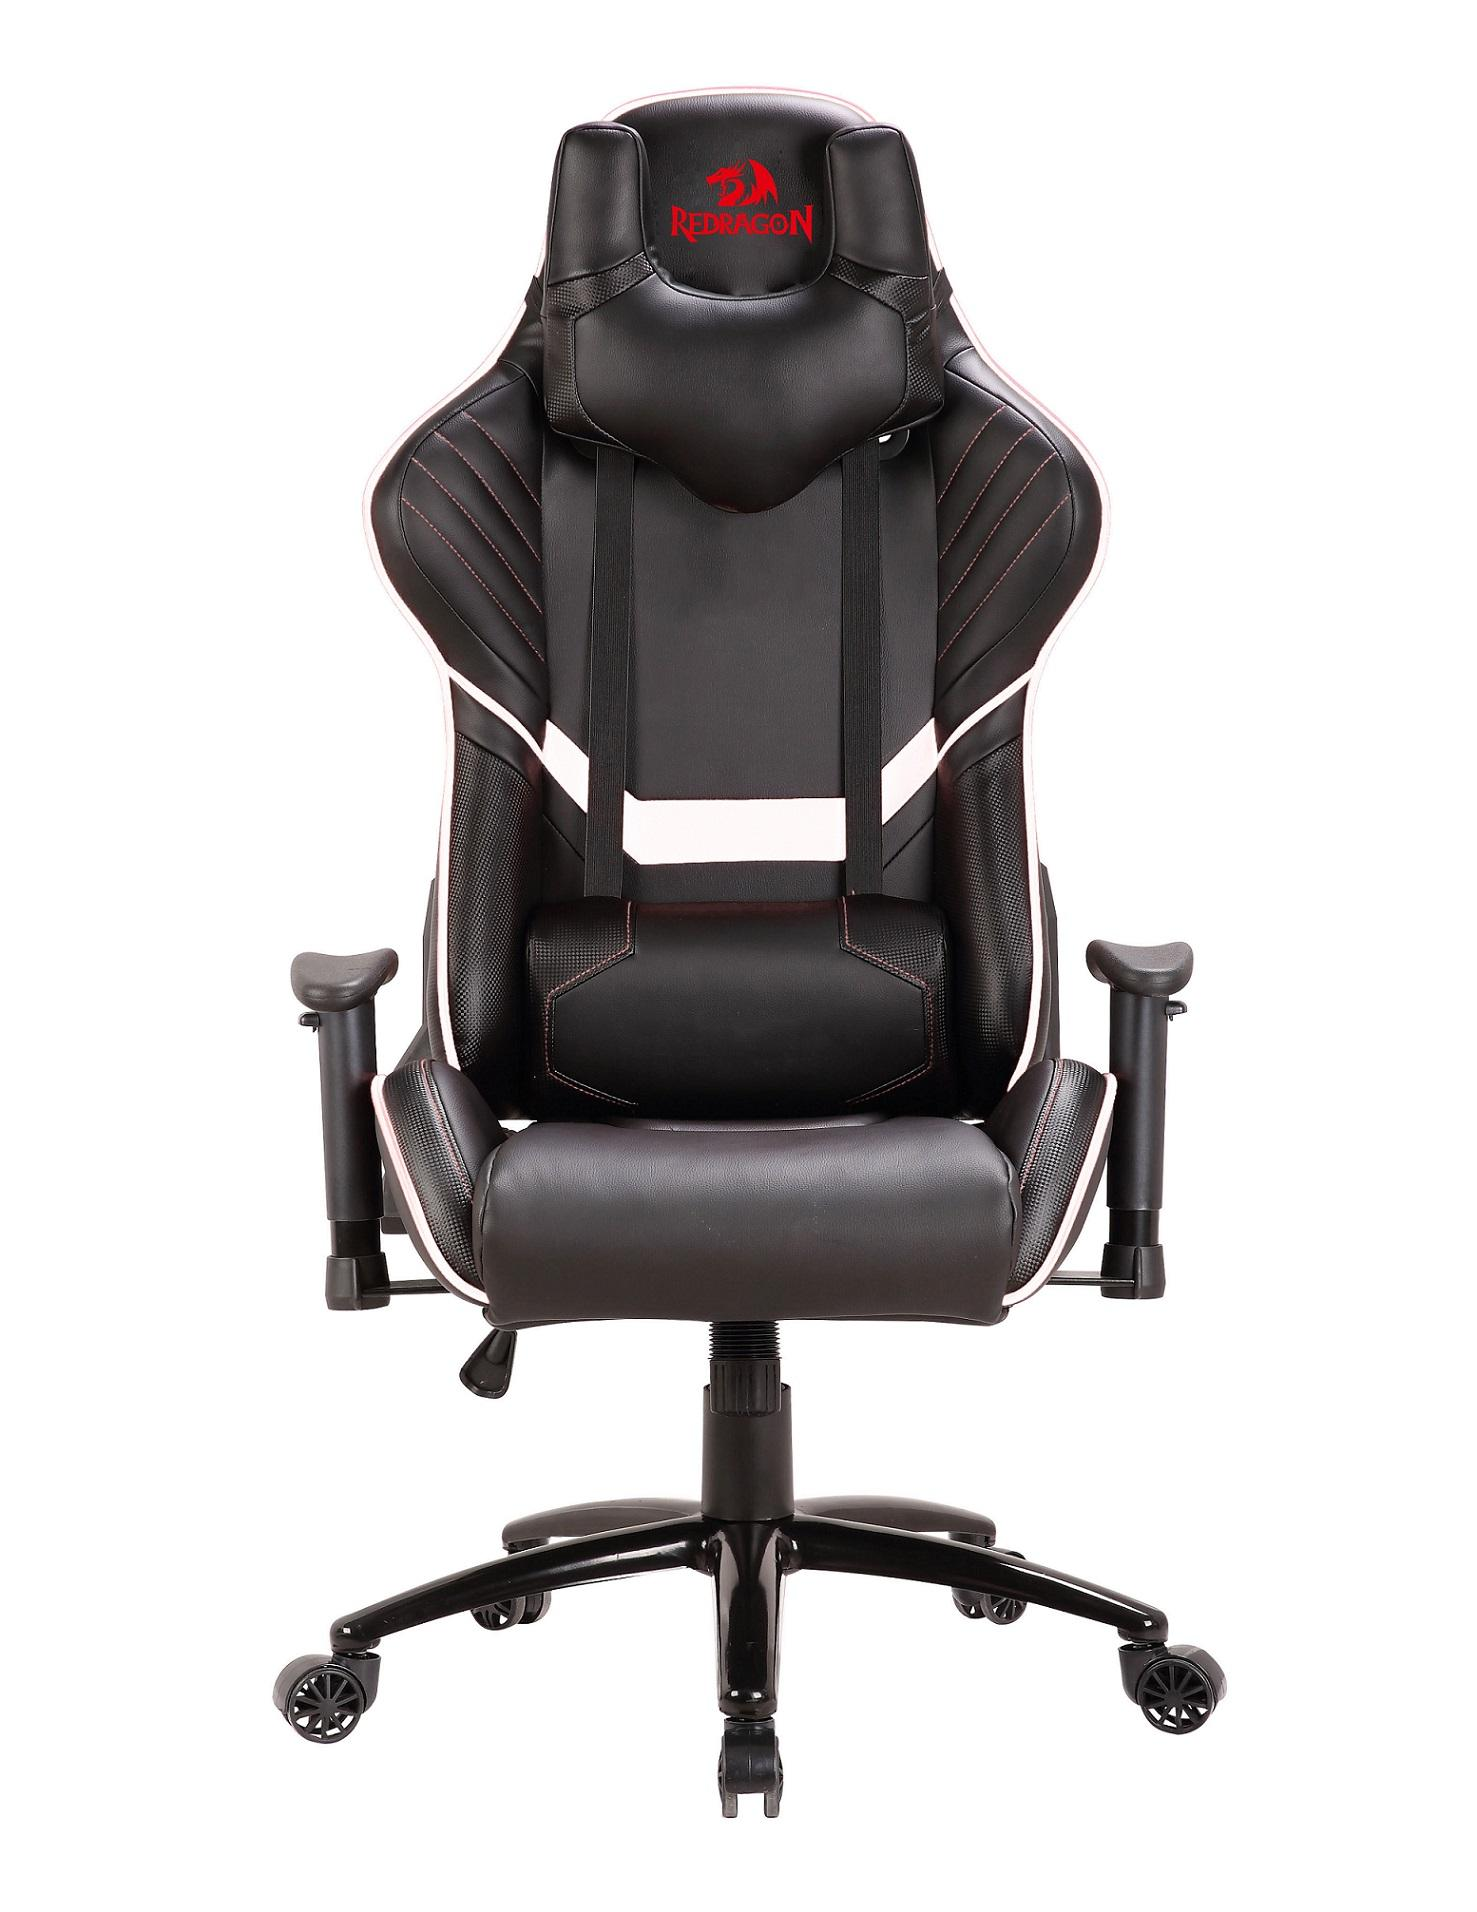 Video Game Chairs For Sale Gaming Room Prices Brands Dxracer Racing Series Oh Rv131 No Black Orange Redragon Taurus C201 Ergonomic Chair